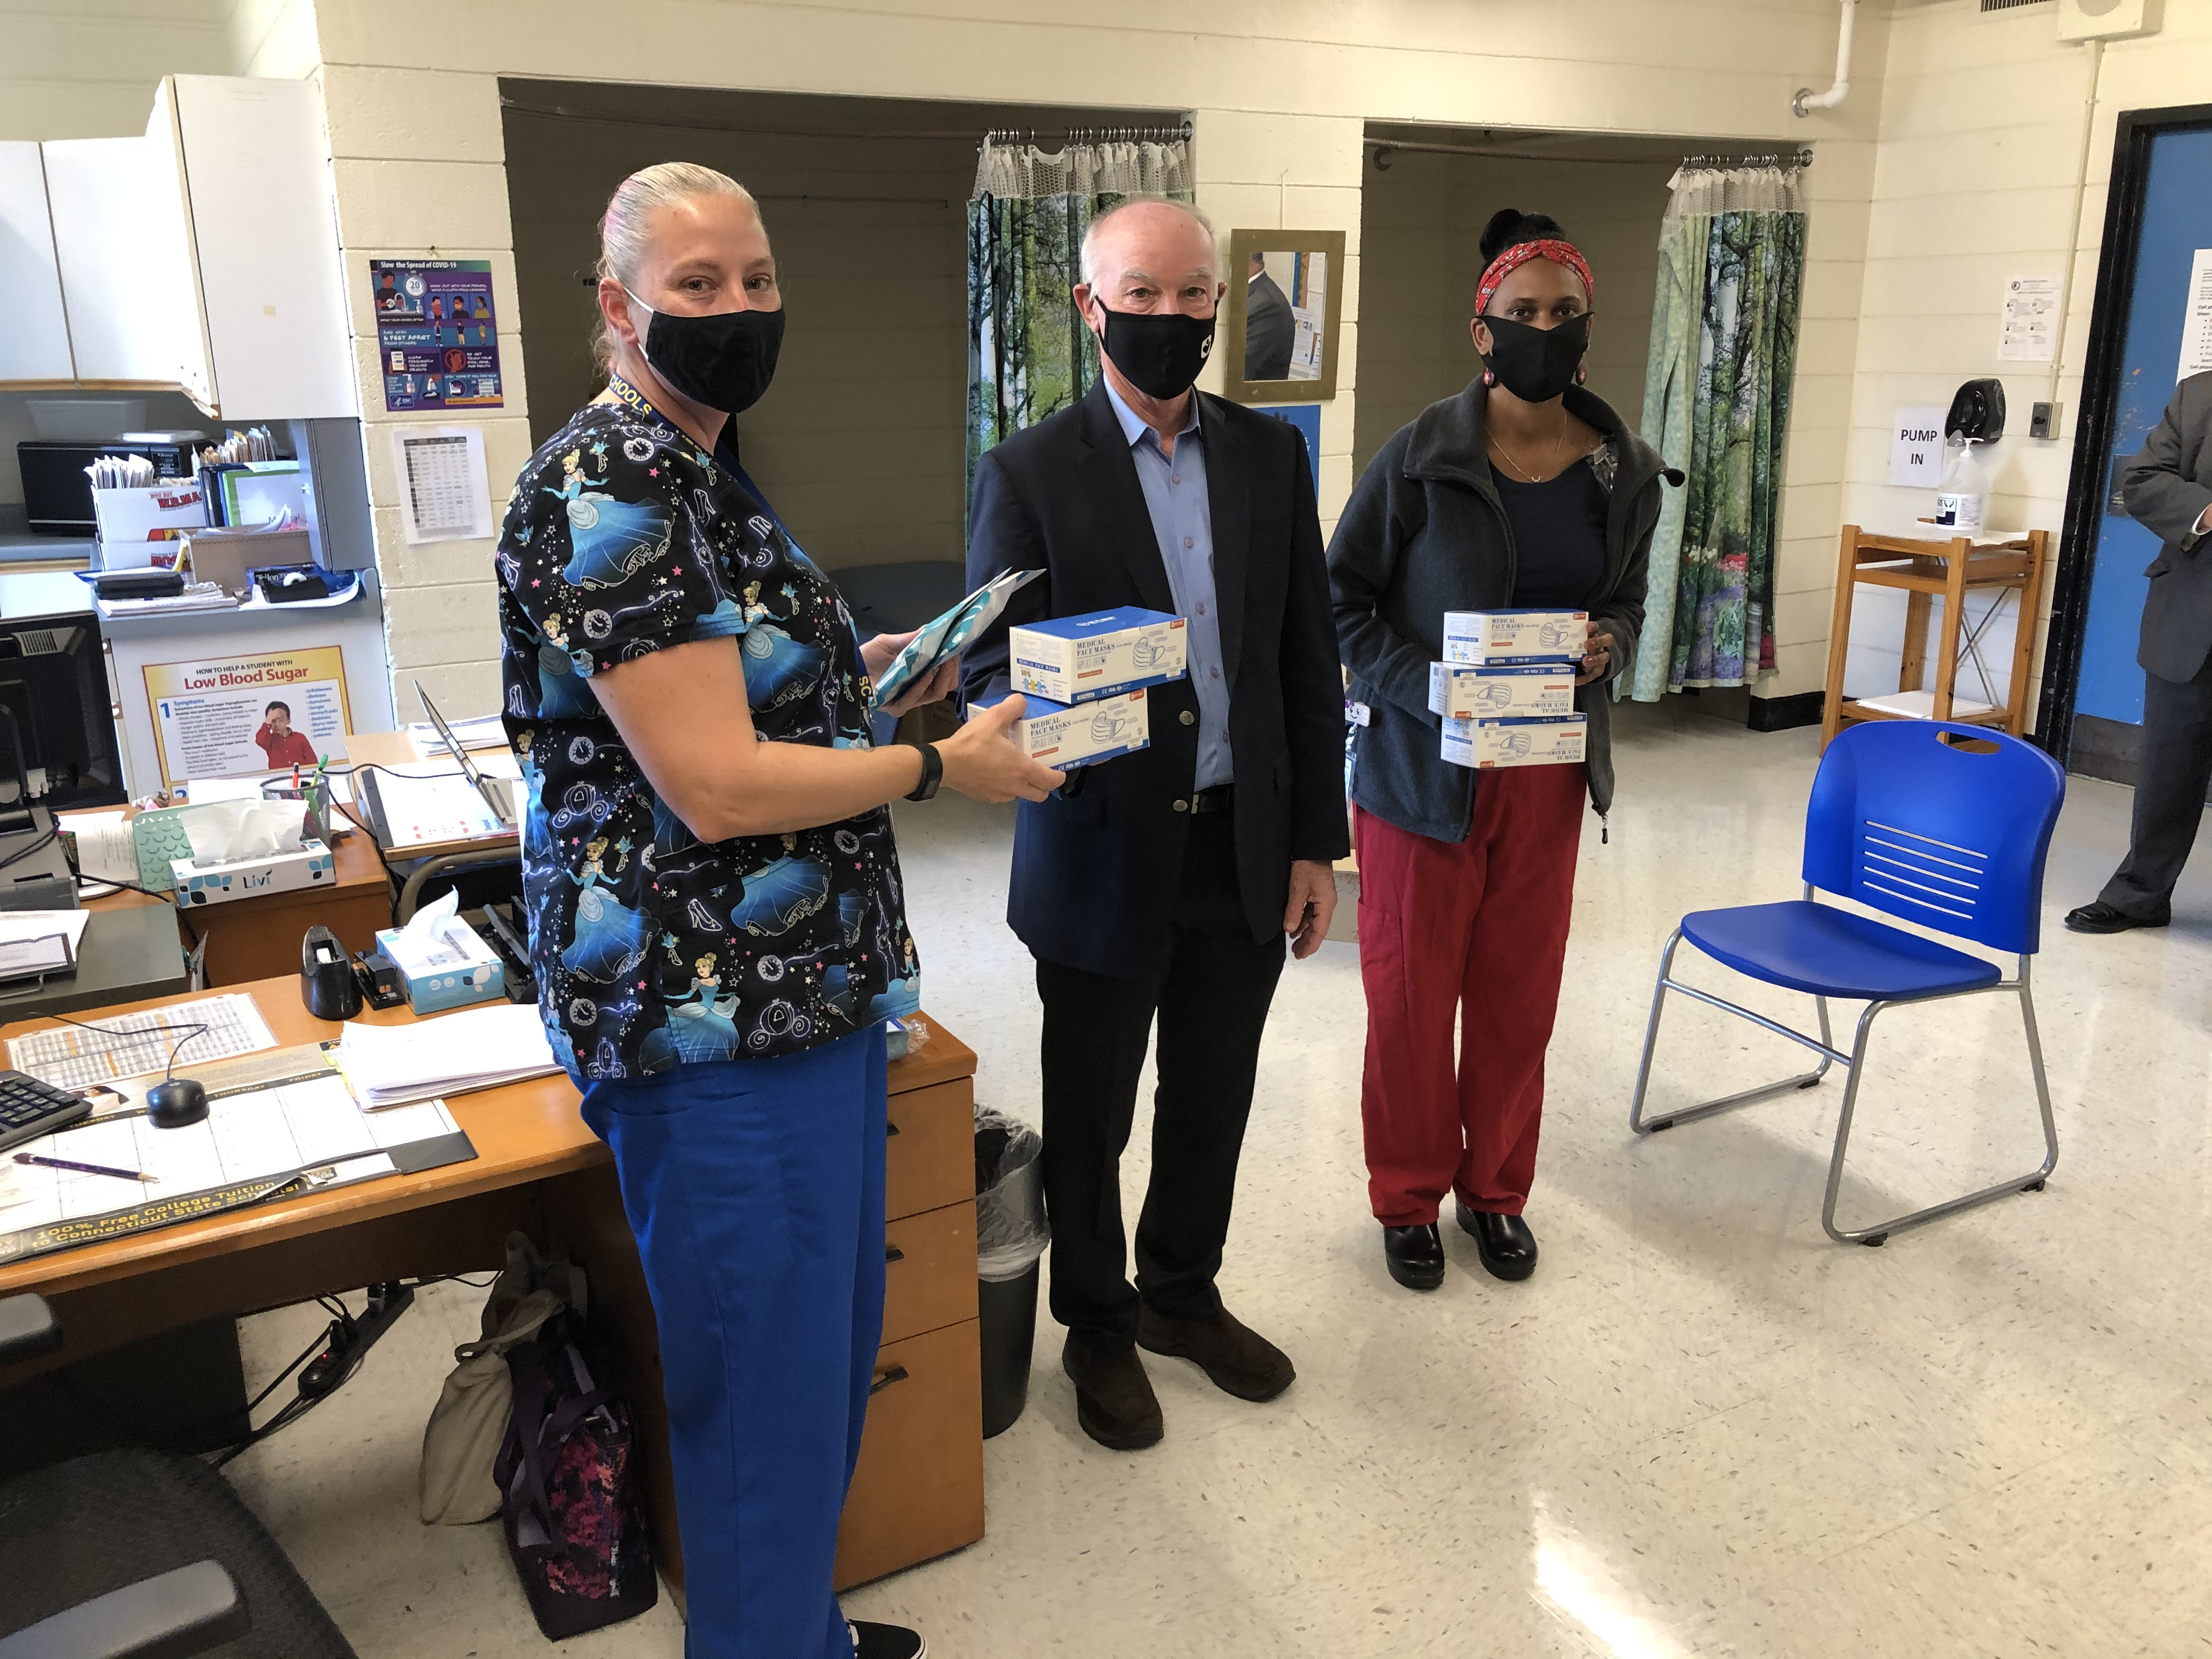 Congressman Joe Courtney visited Rockville High School Thursday to tour the school and deliver face masks to the nurse's office.